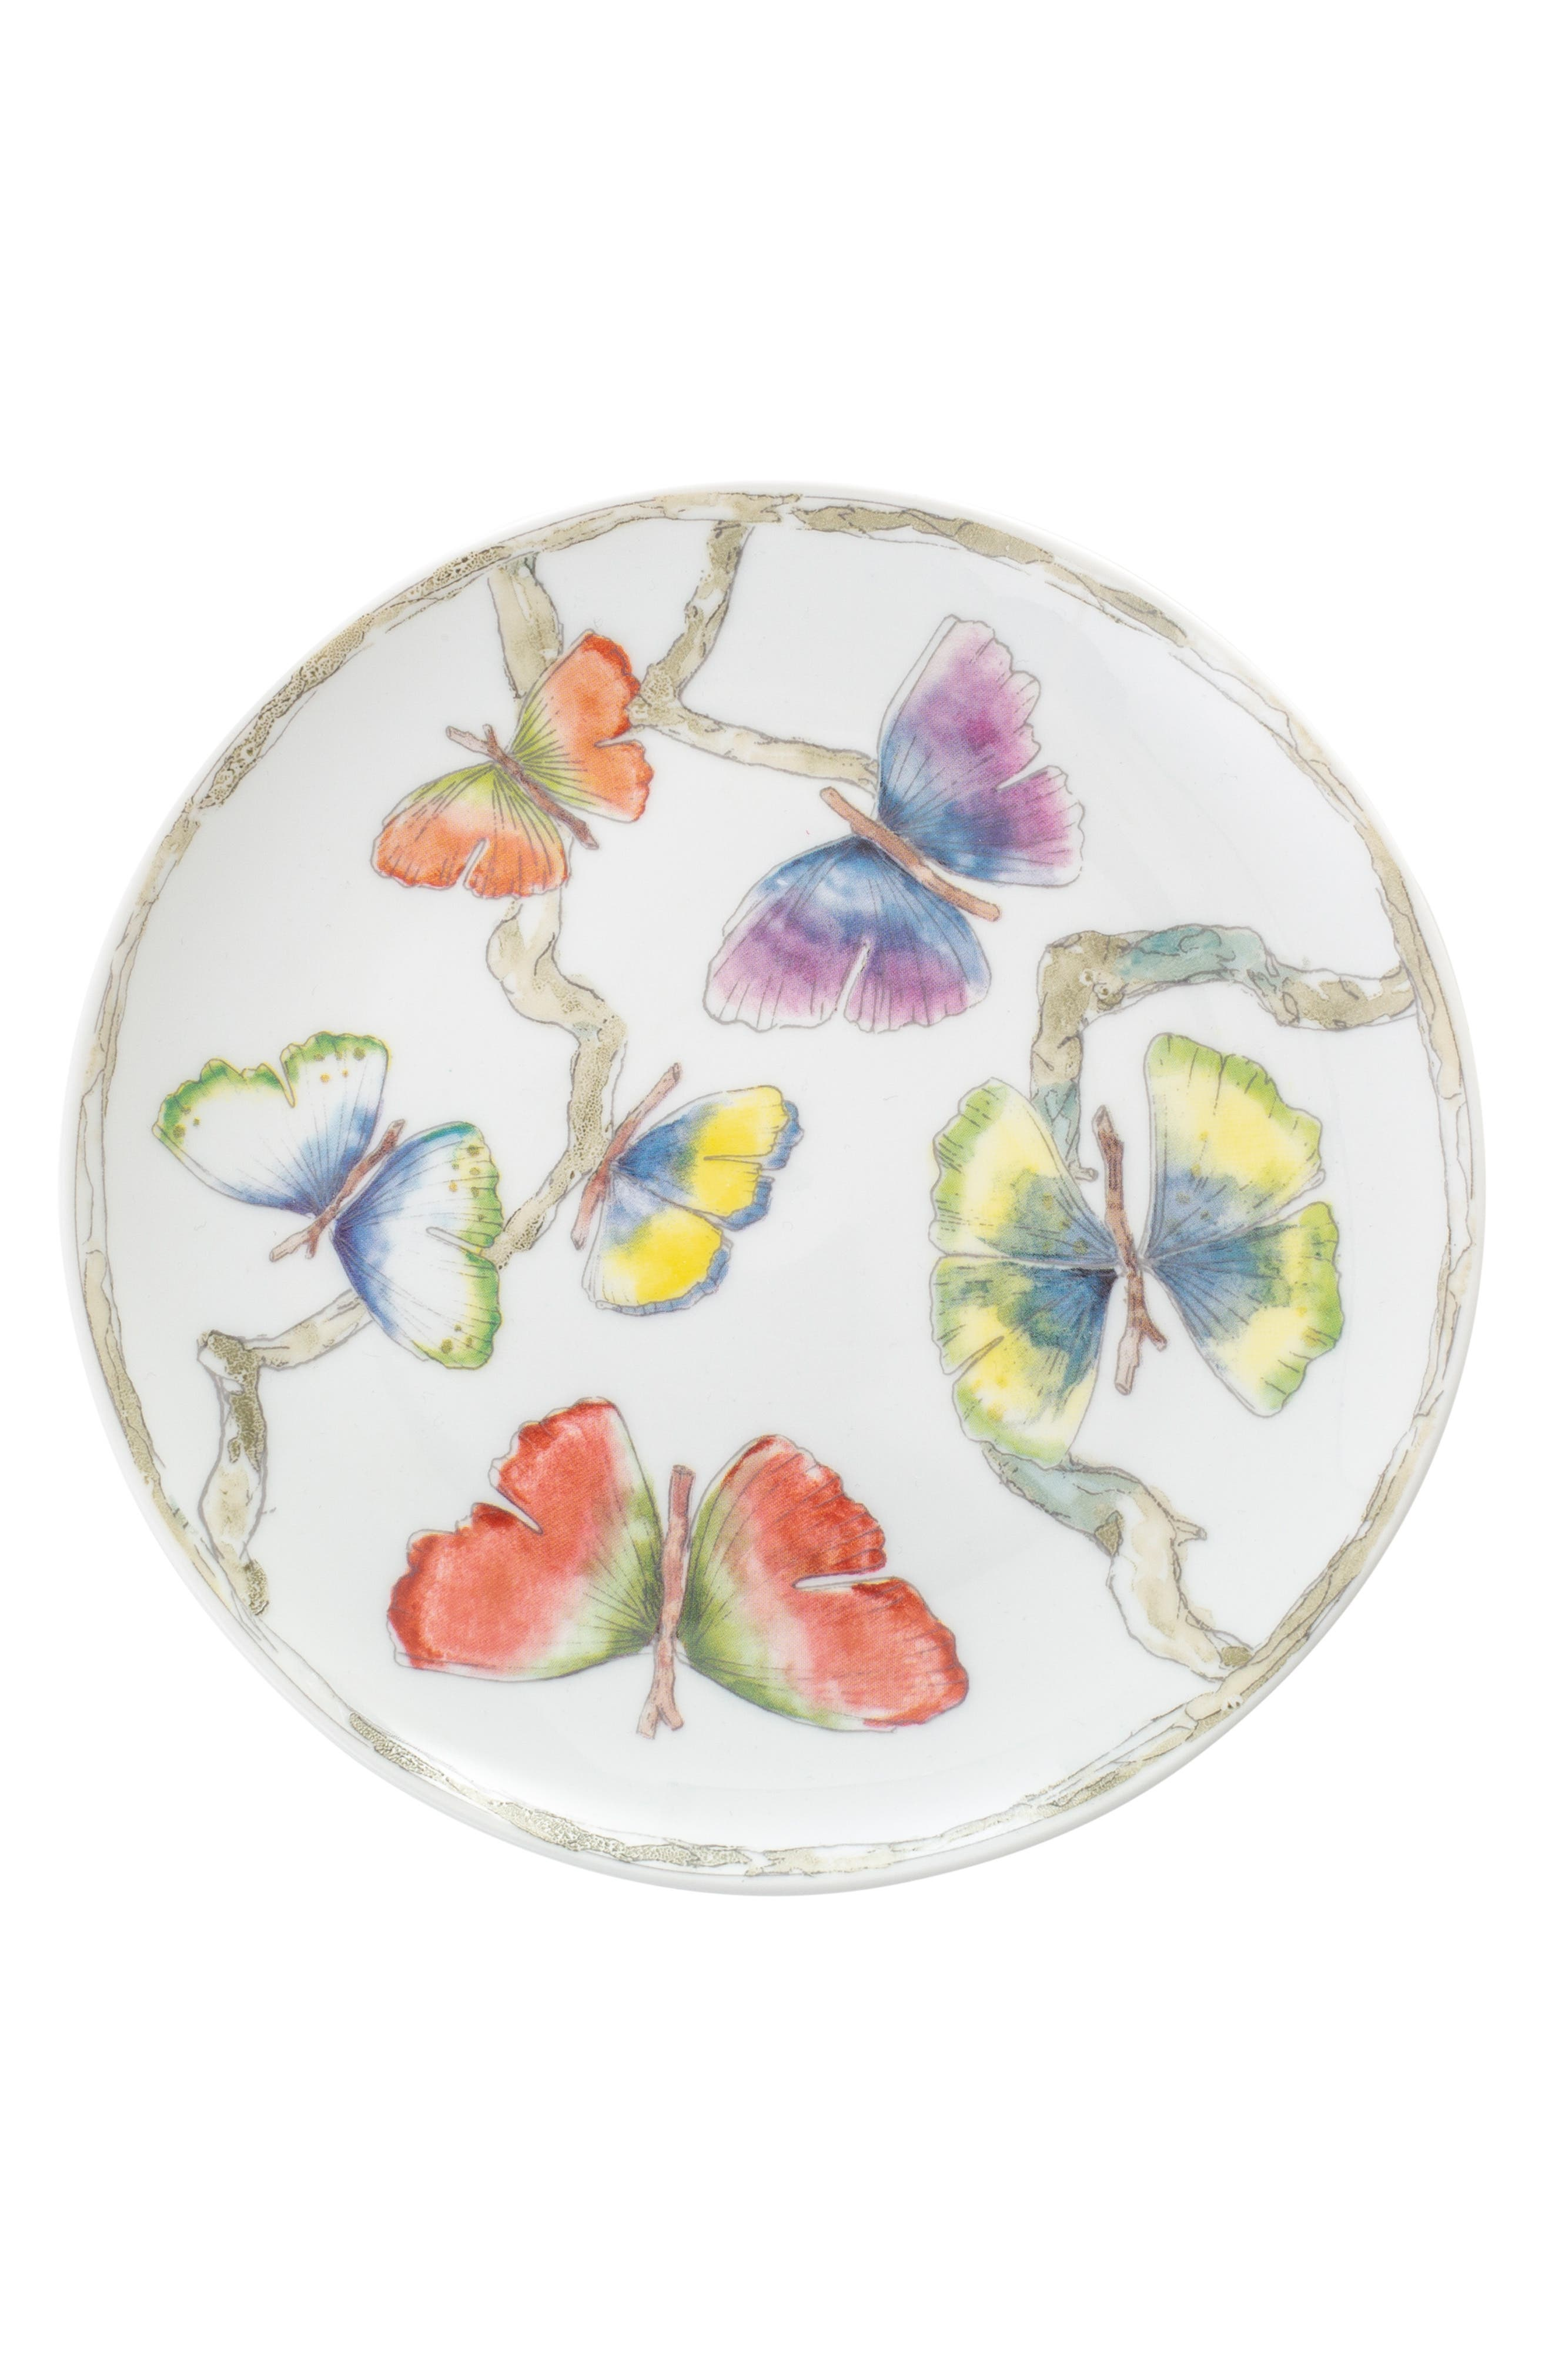 Butterfly Ginkgo Set of 4 Tidbit Plates,                             Main thumbnail 1, color,                             WHITE